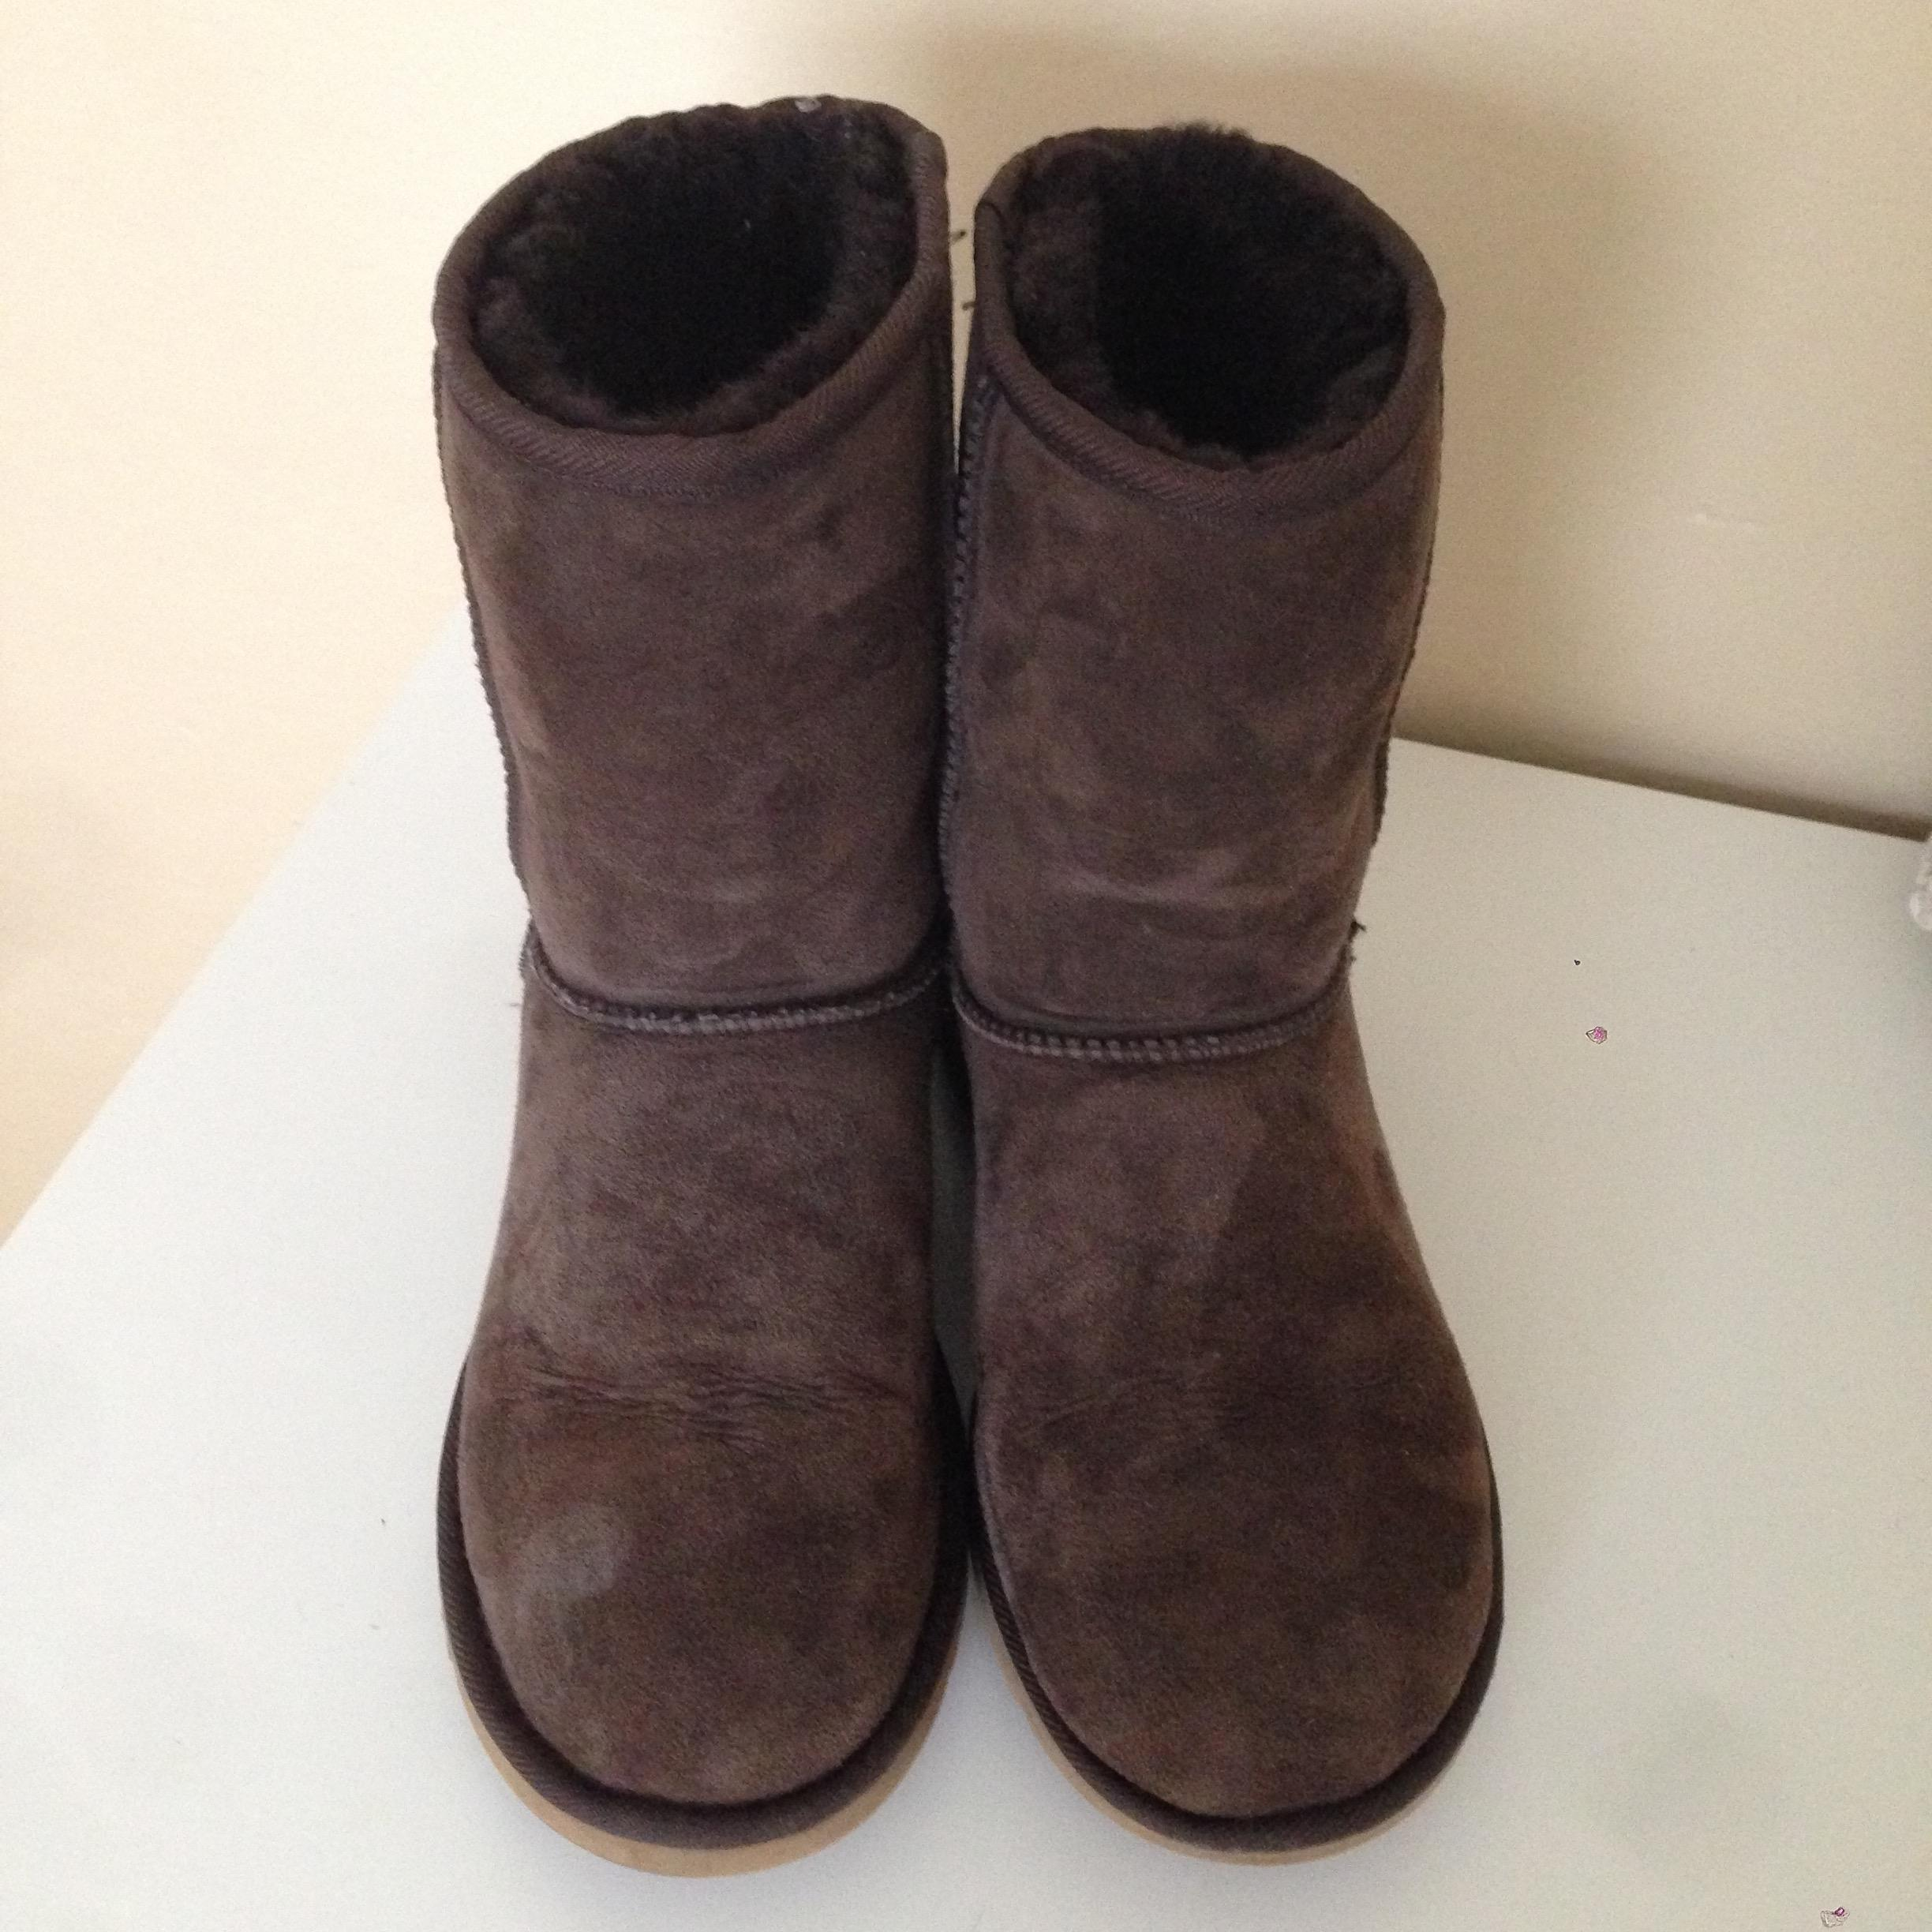 Cheapest Dark Brown Ugg Boots F593f Cb3ff